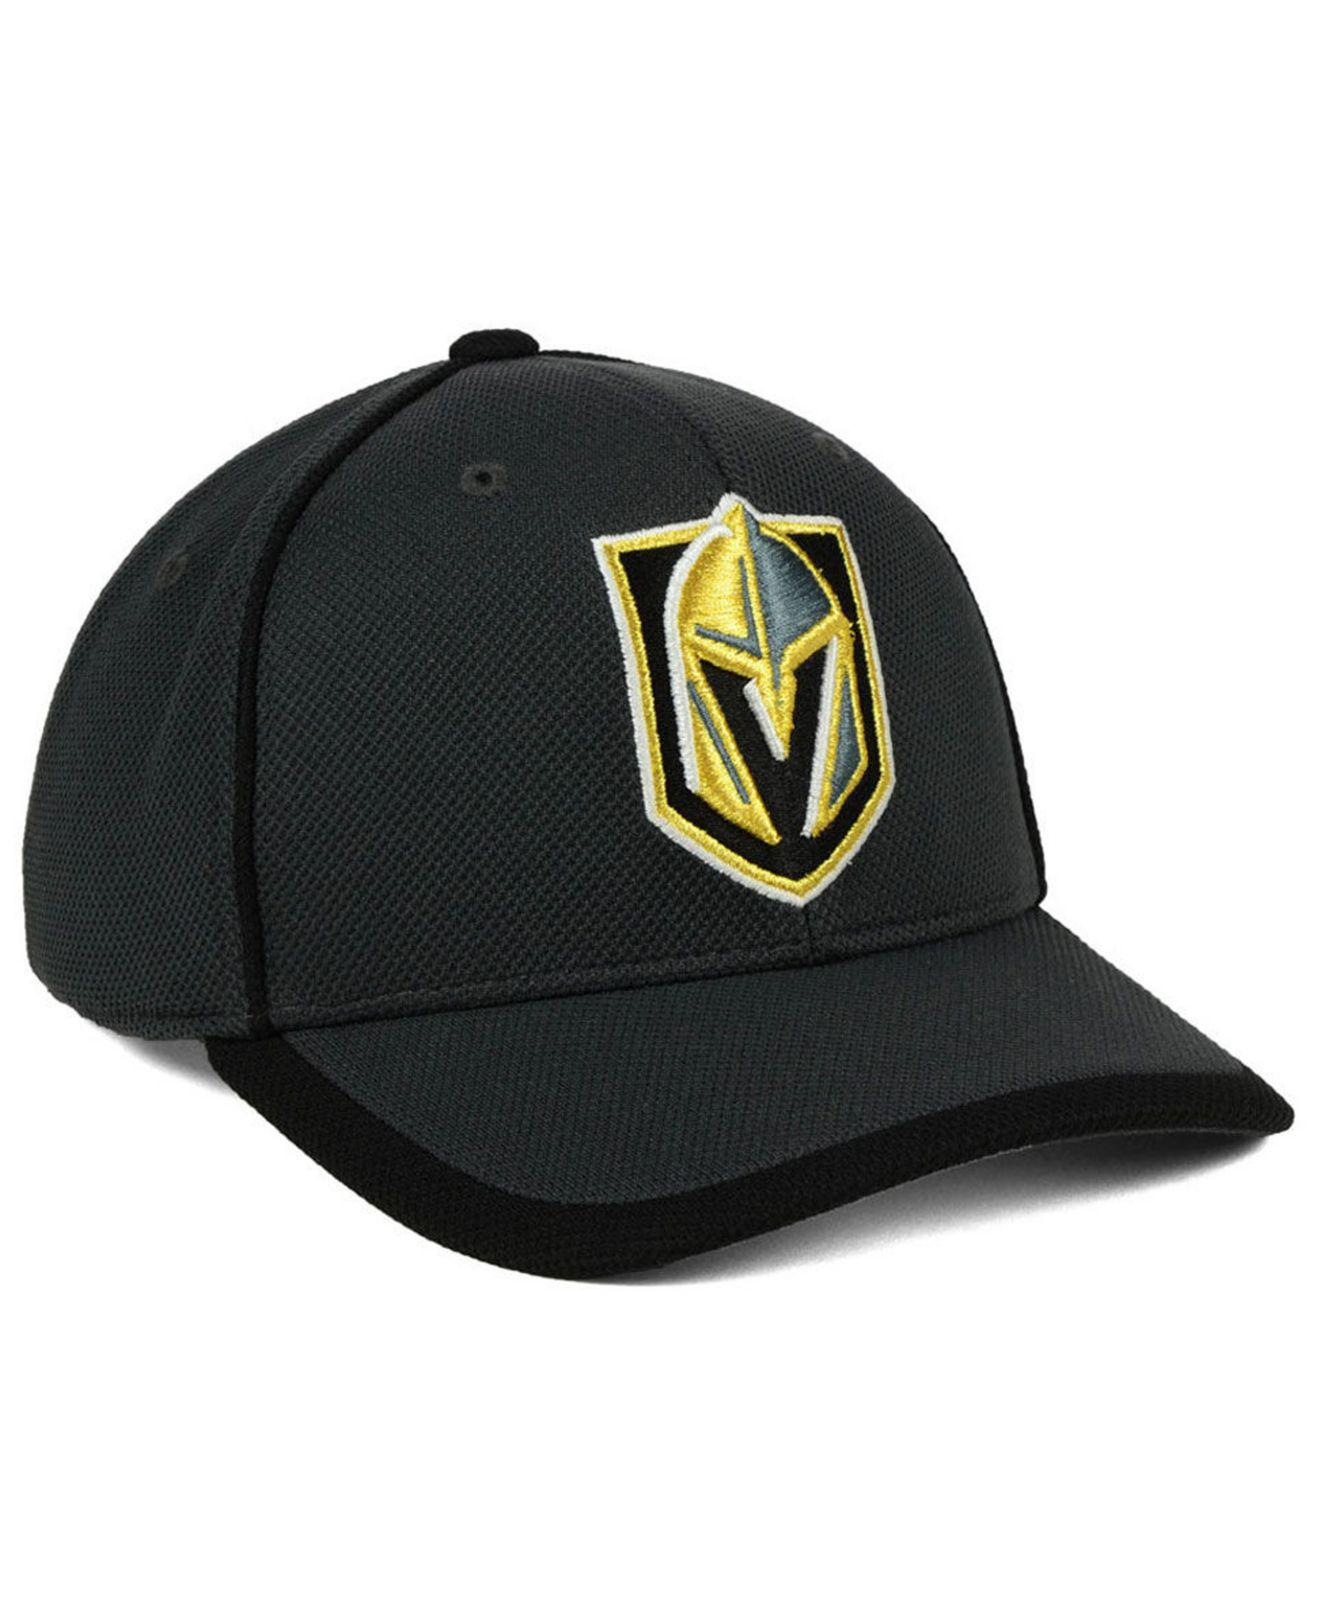 info for 281a9 98607 Lyst - adidas Vegas Golden Knights Clipper Adjustable Cap in Black ...